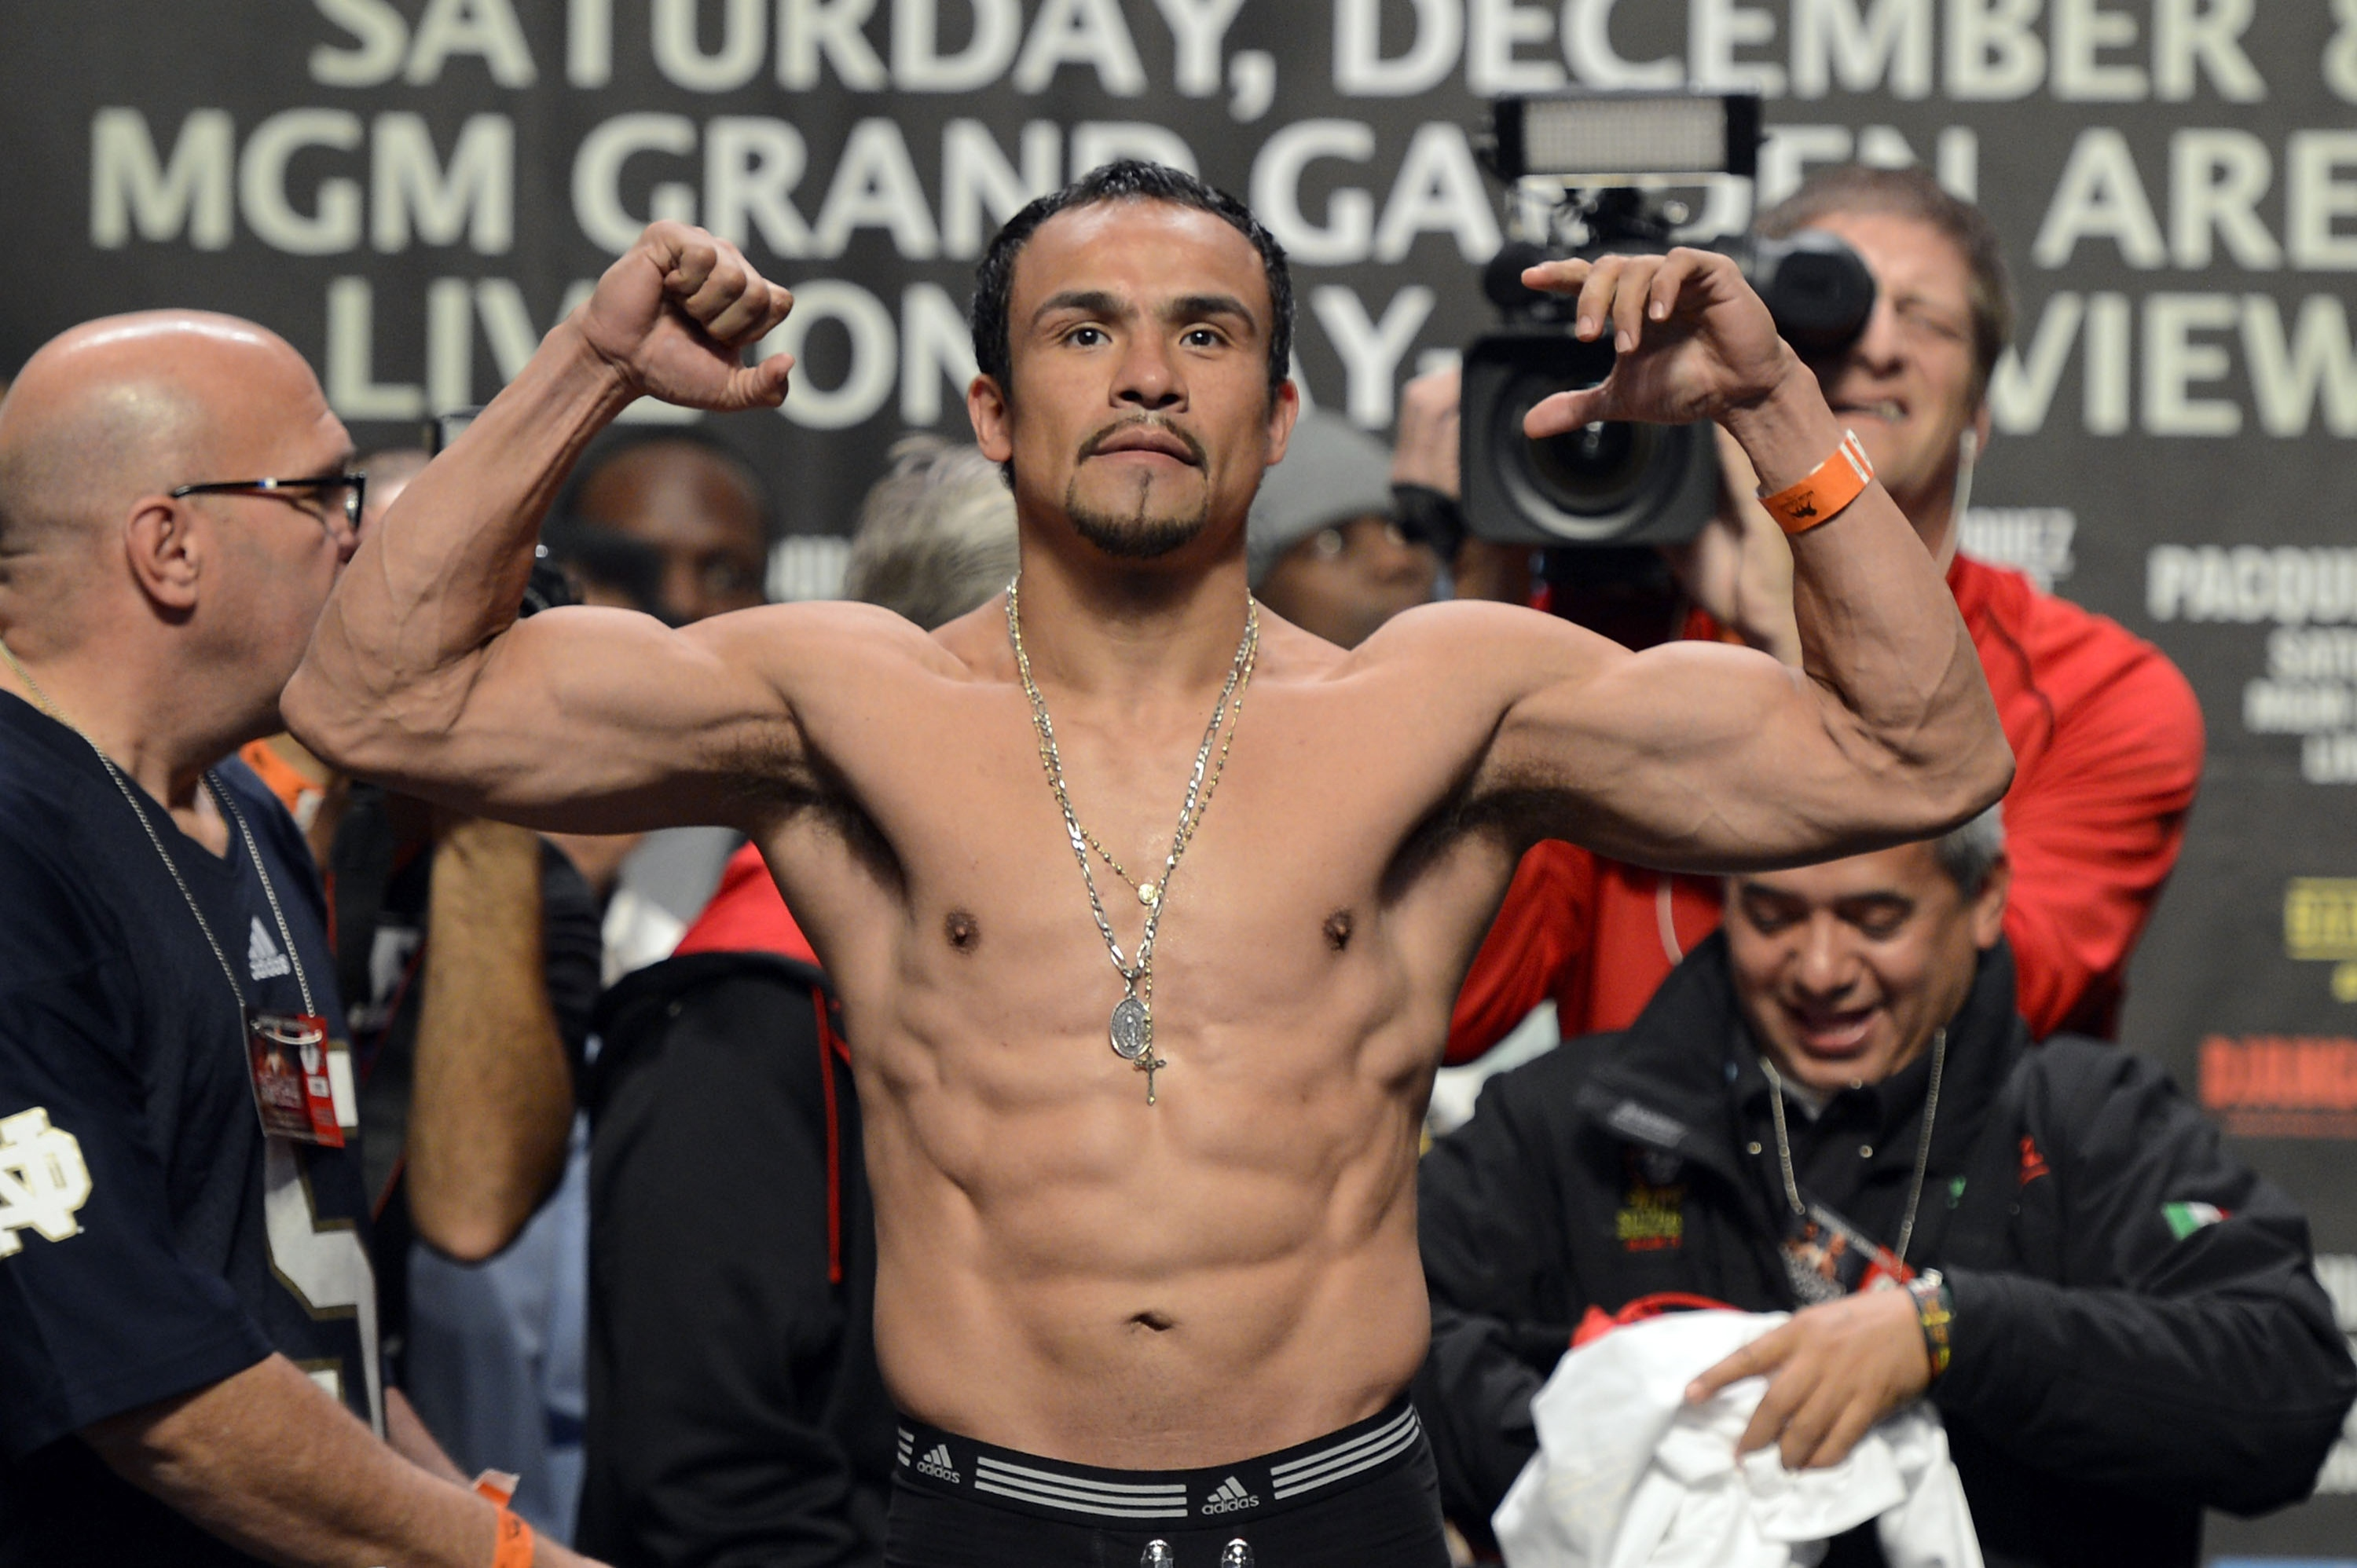 Juan Manuel Marquez poses during the official weigh-in for his fight against Manny Pacquiao. (Getty)